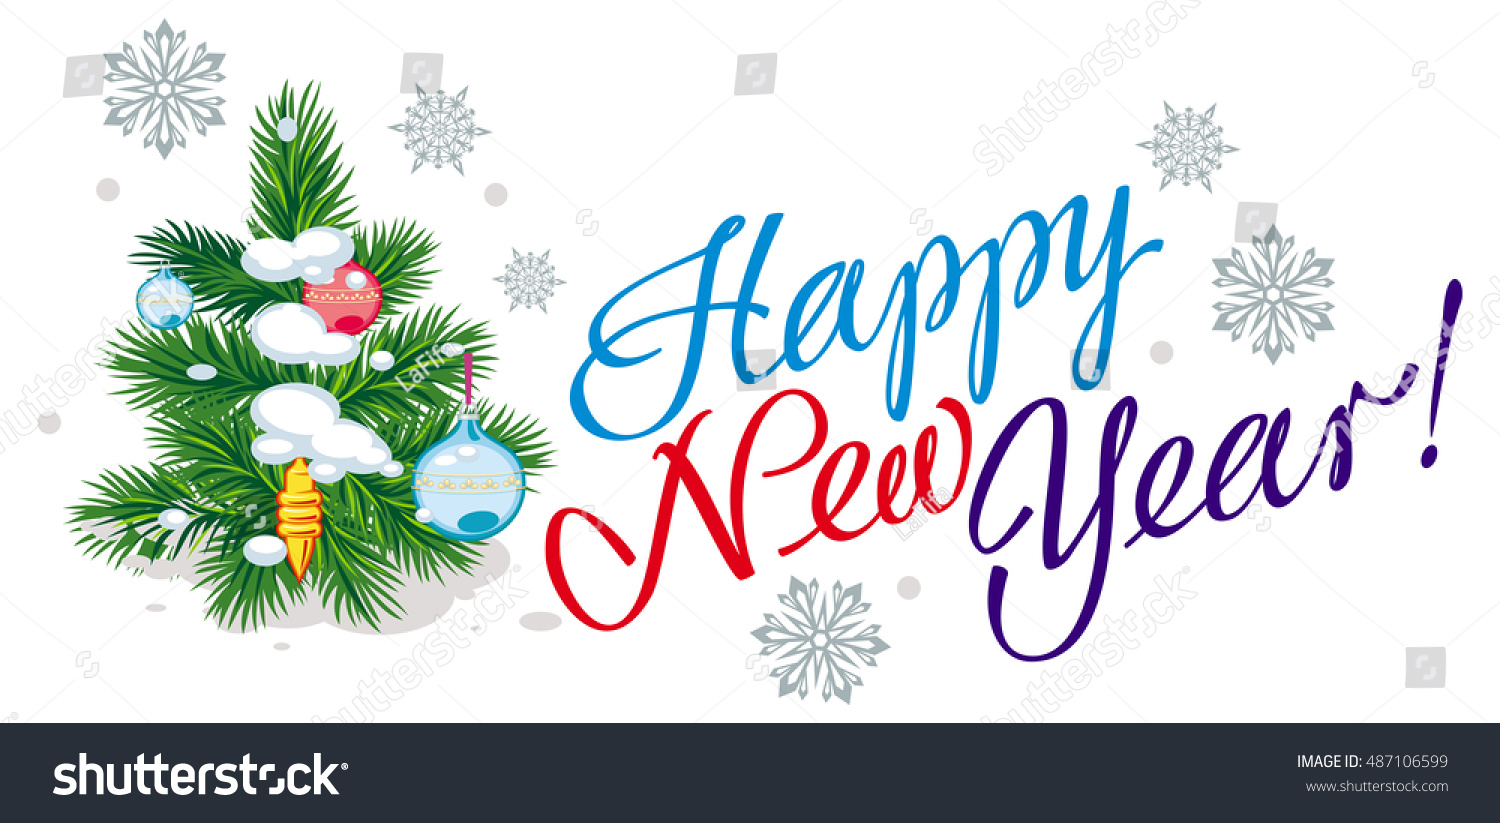 holiday banner with christmas tree artistic written texthappy new year